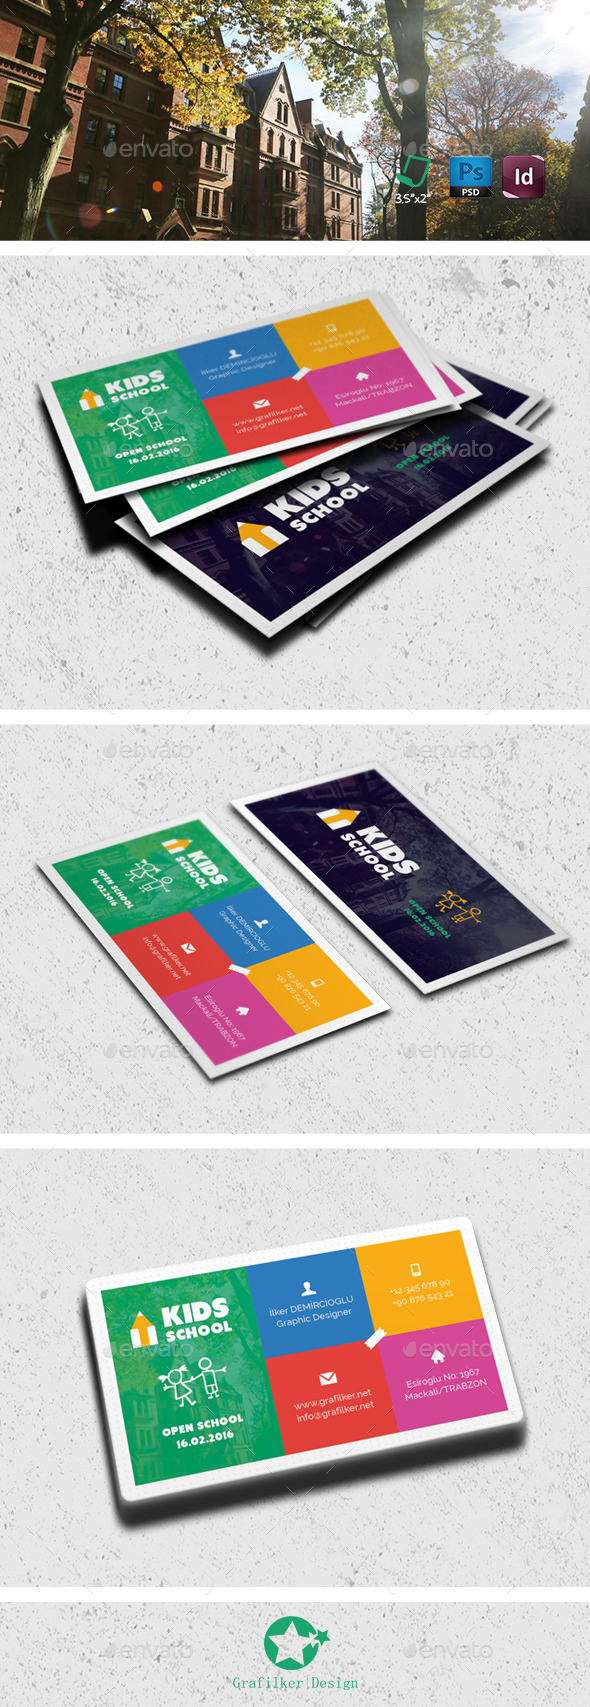 school business card templates by grafilker